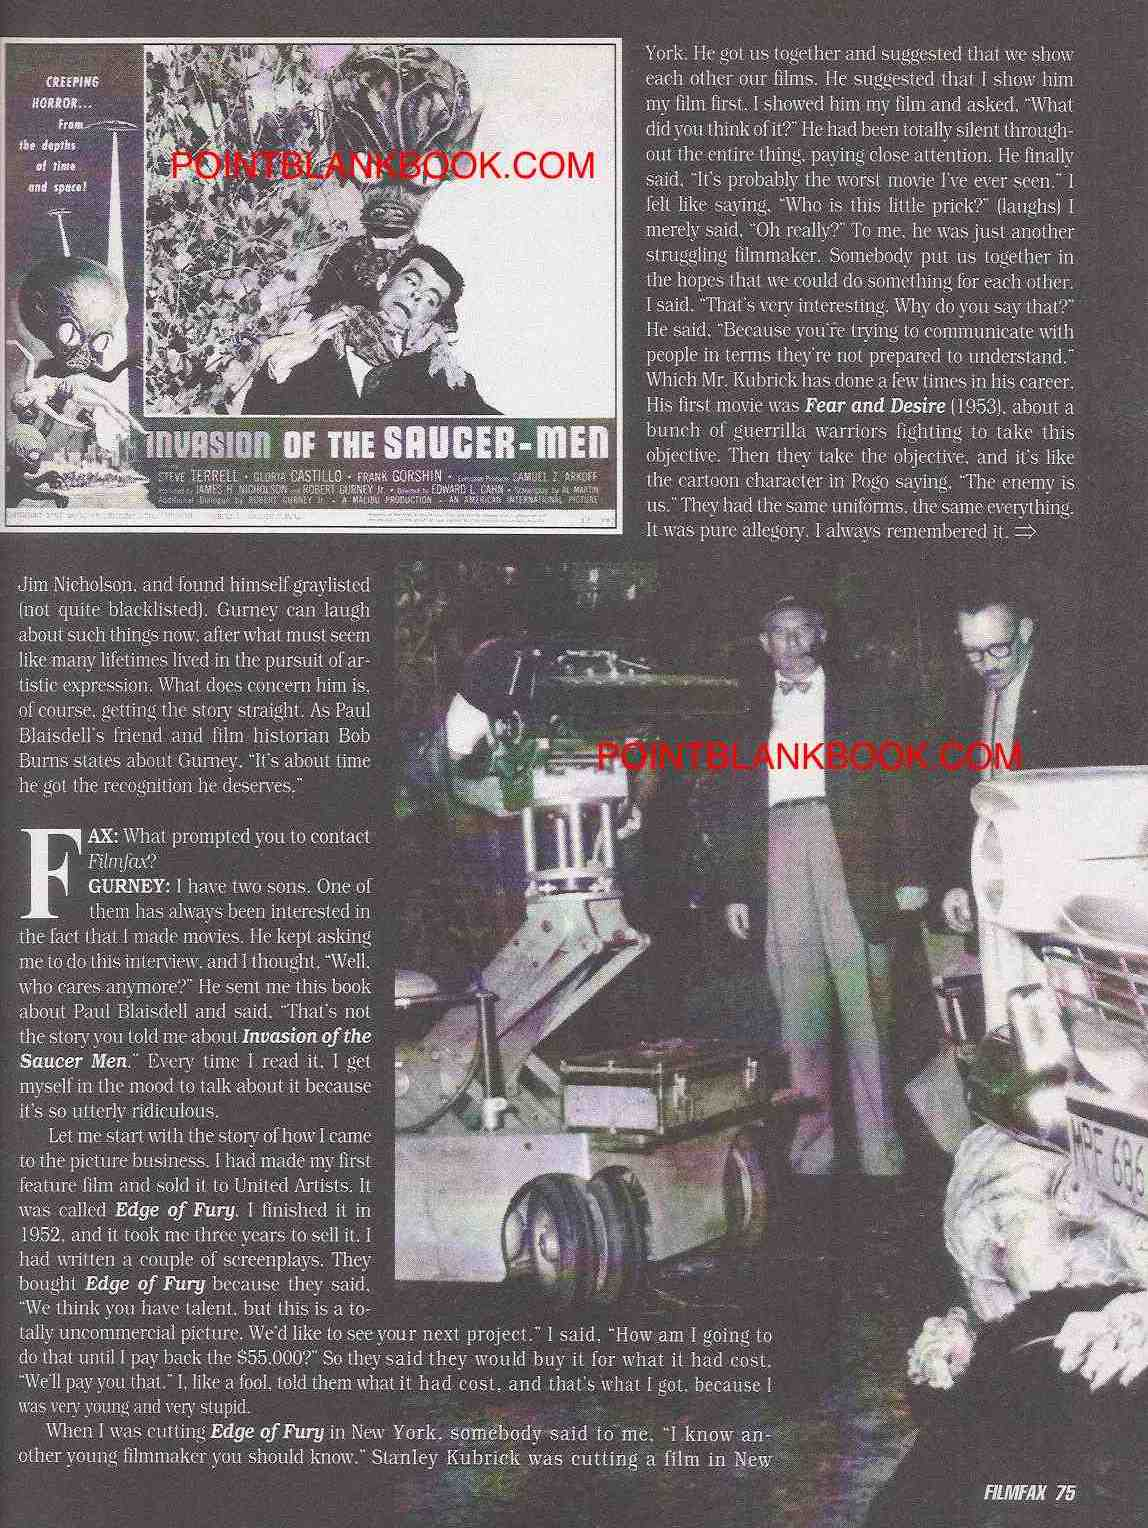 Robert Gurney Filmfax interview, page 2.